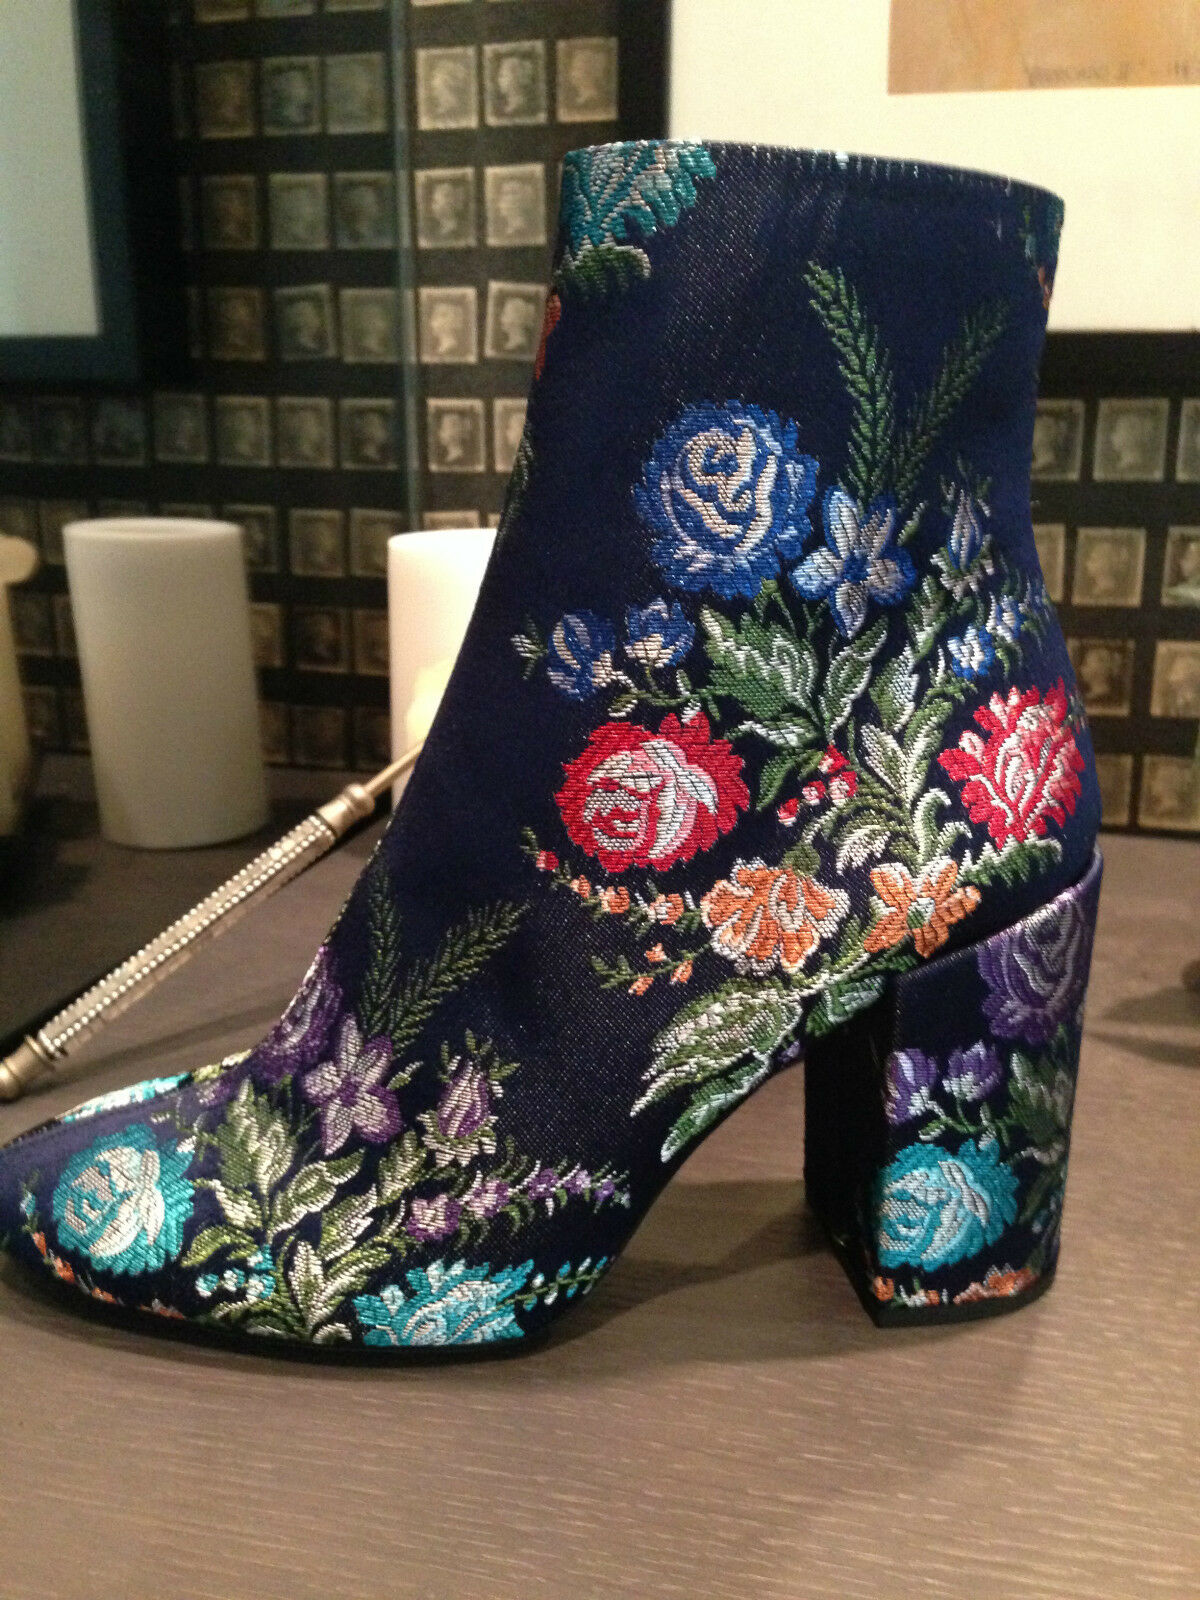 ZARA Blau EMBROIDERY DETAIL ANKLE Stiefel REF. 2107/201  39 UE/ 8 USA, 7 UK